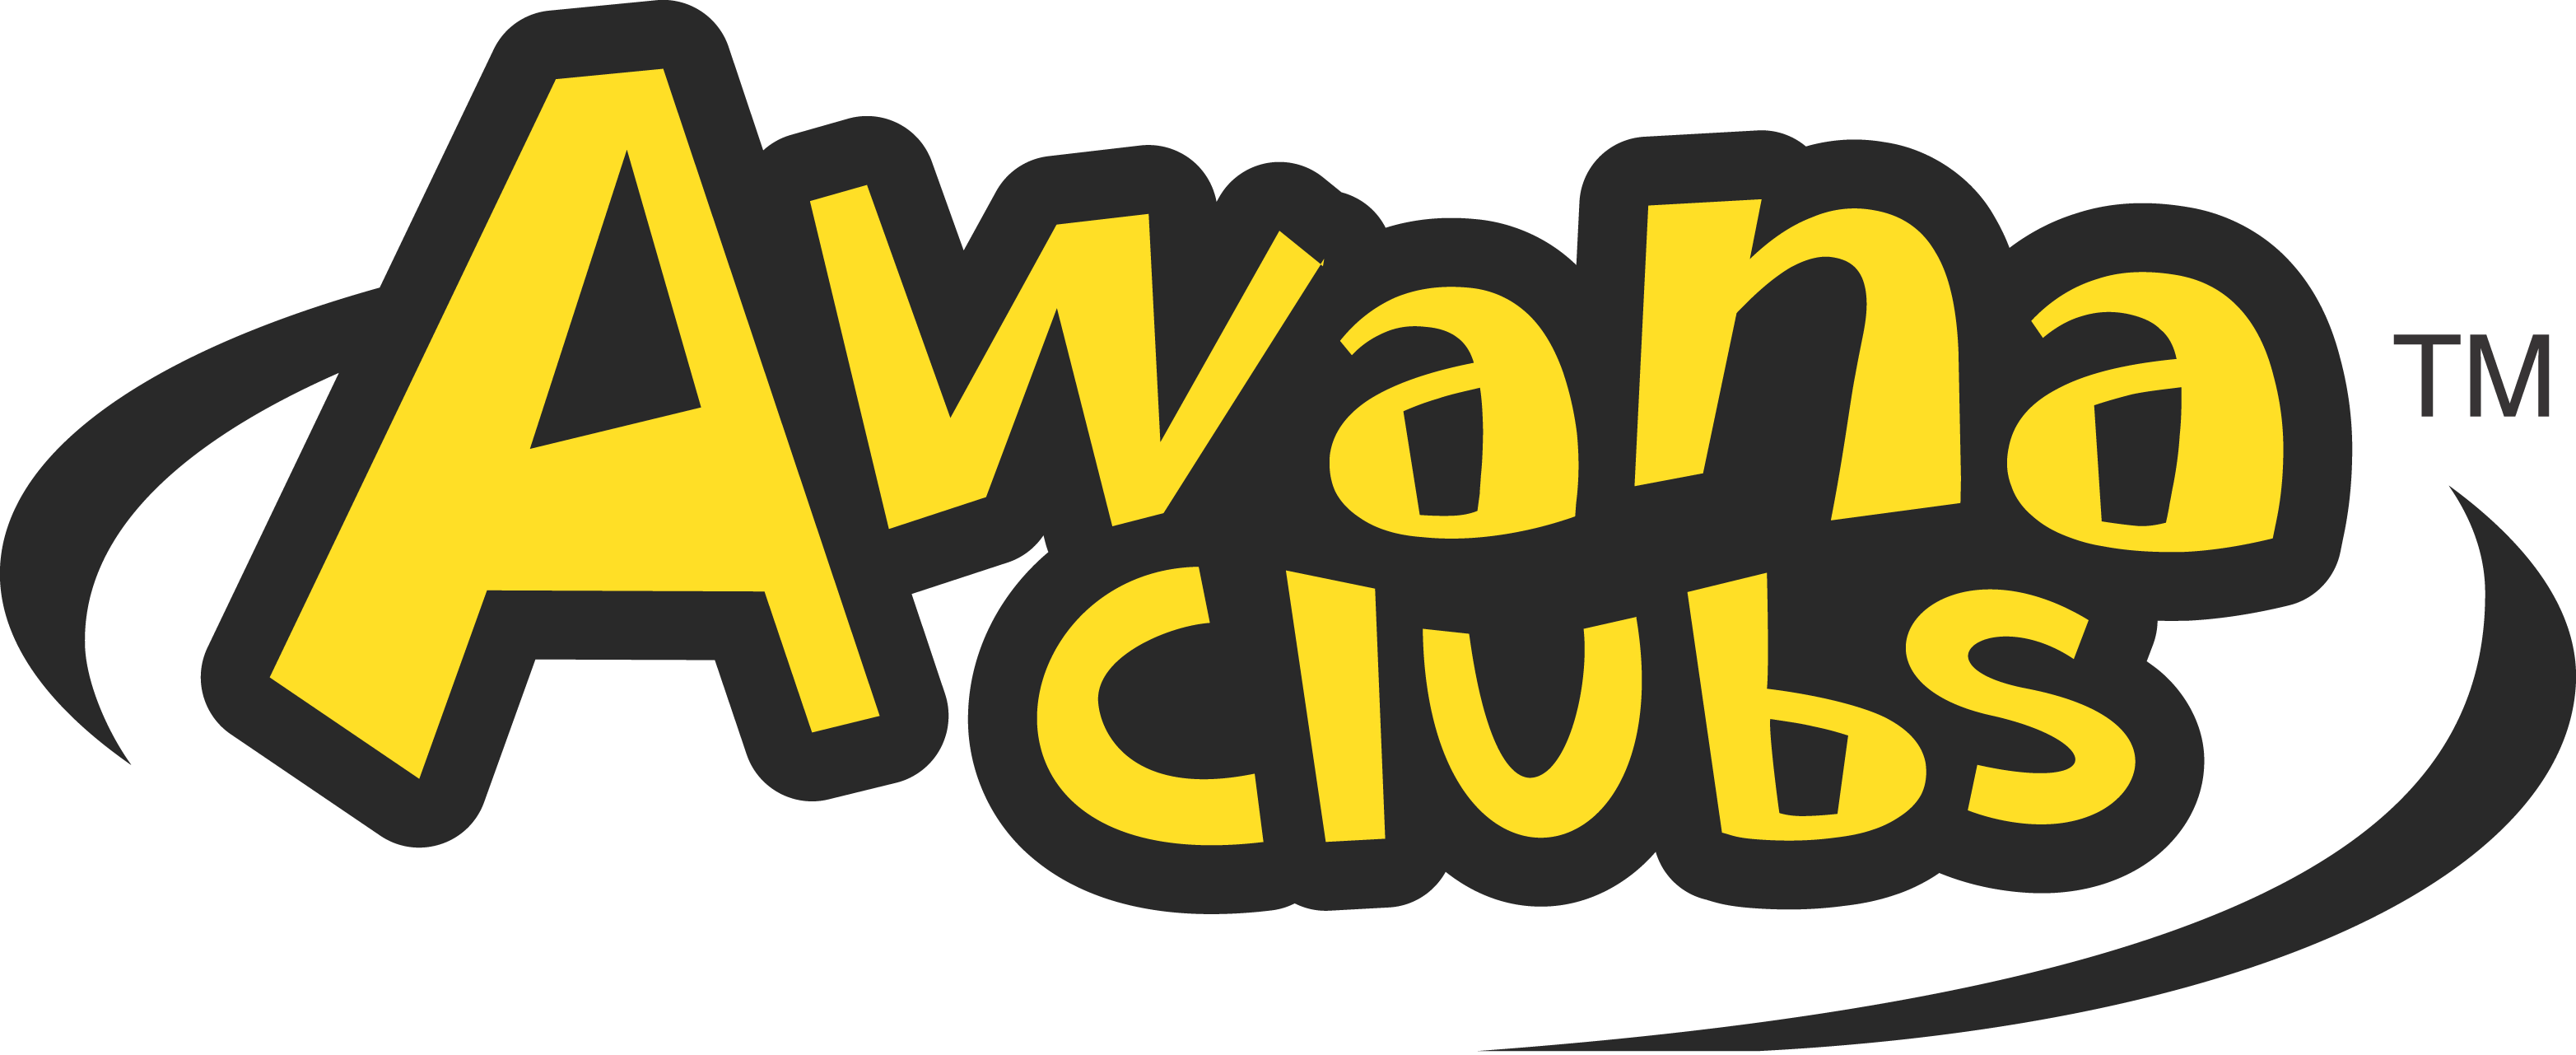 Awana thank you clipart clipart black and white Kenly Missionary Baptist Church clipart black and white